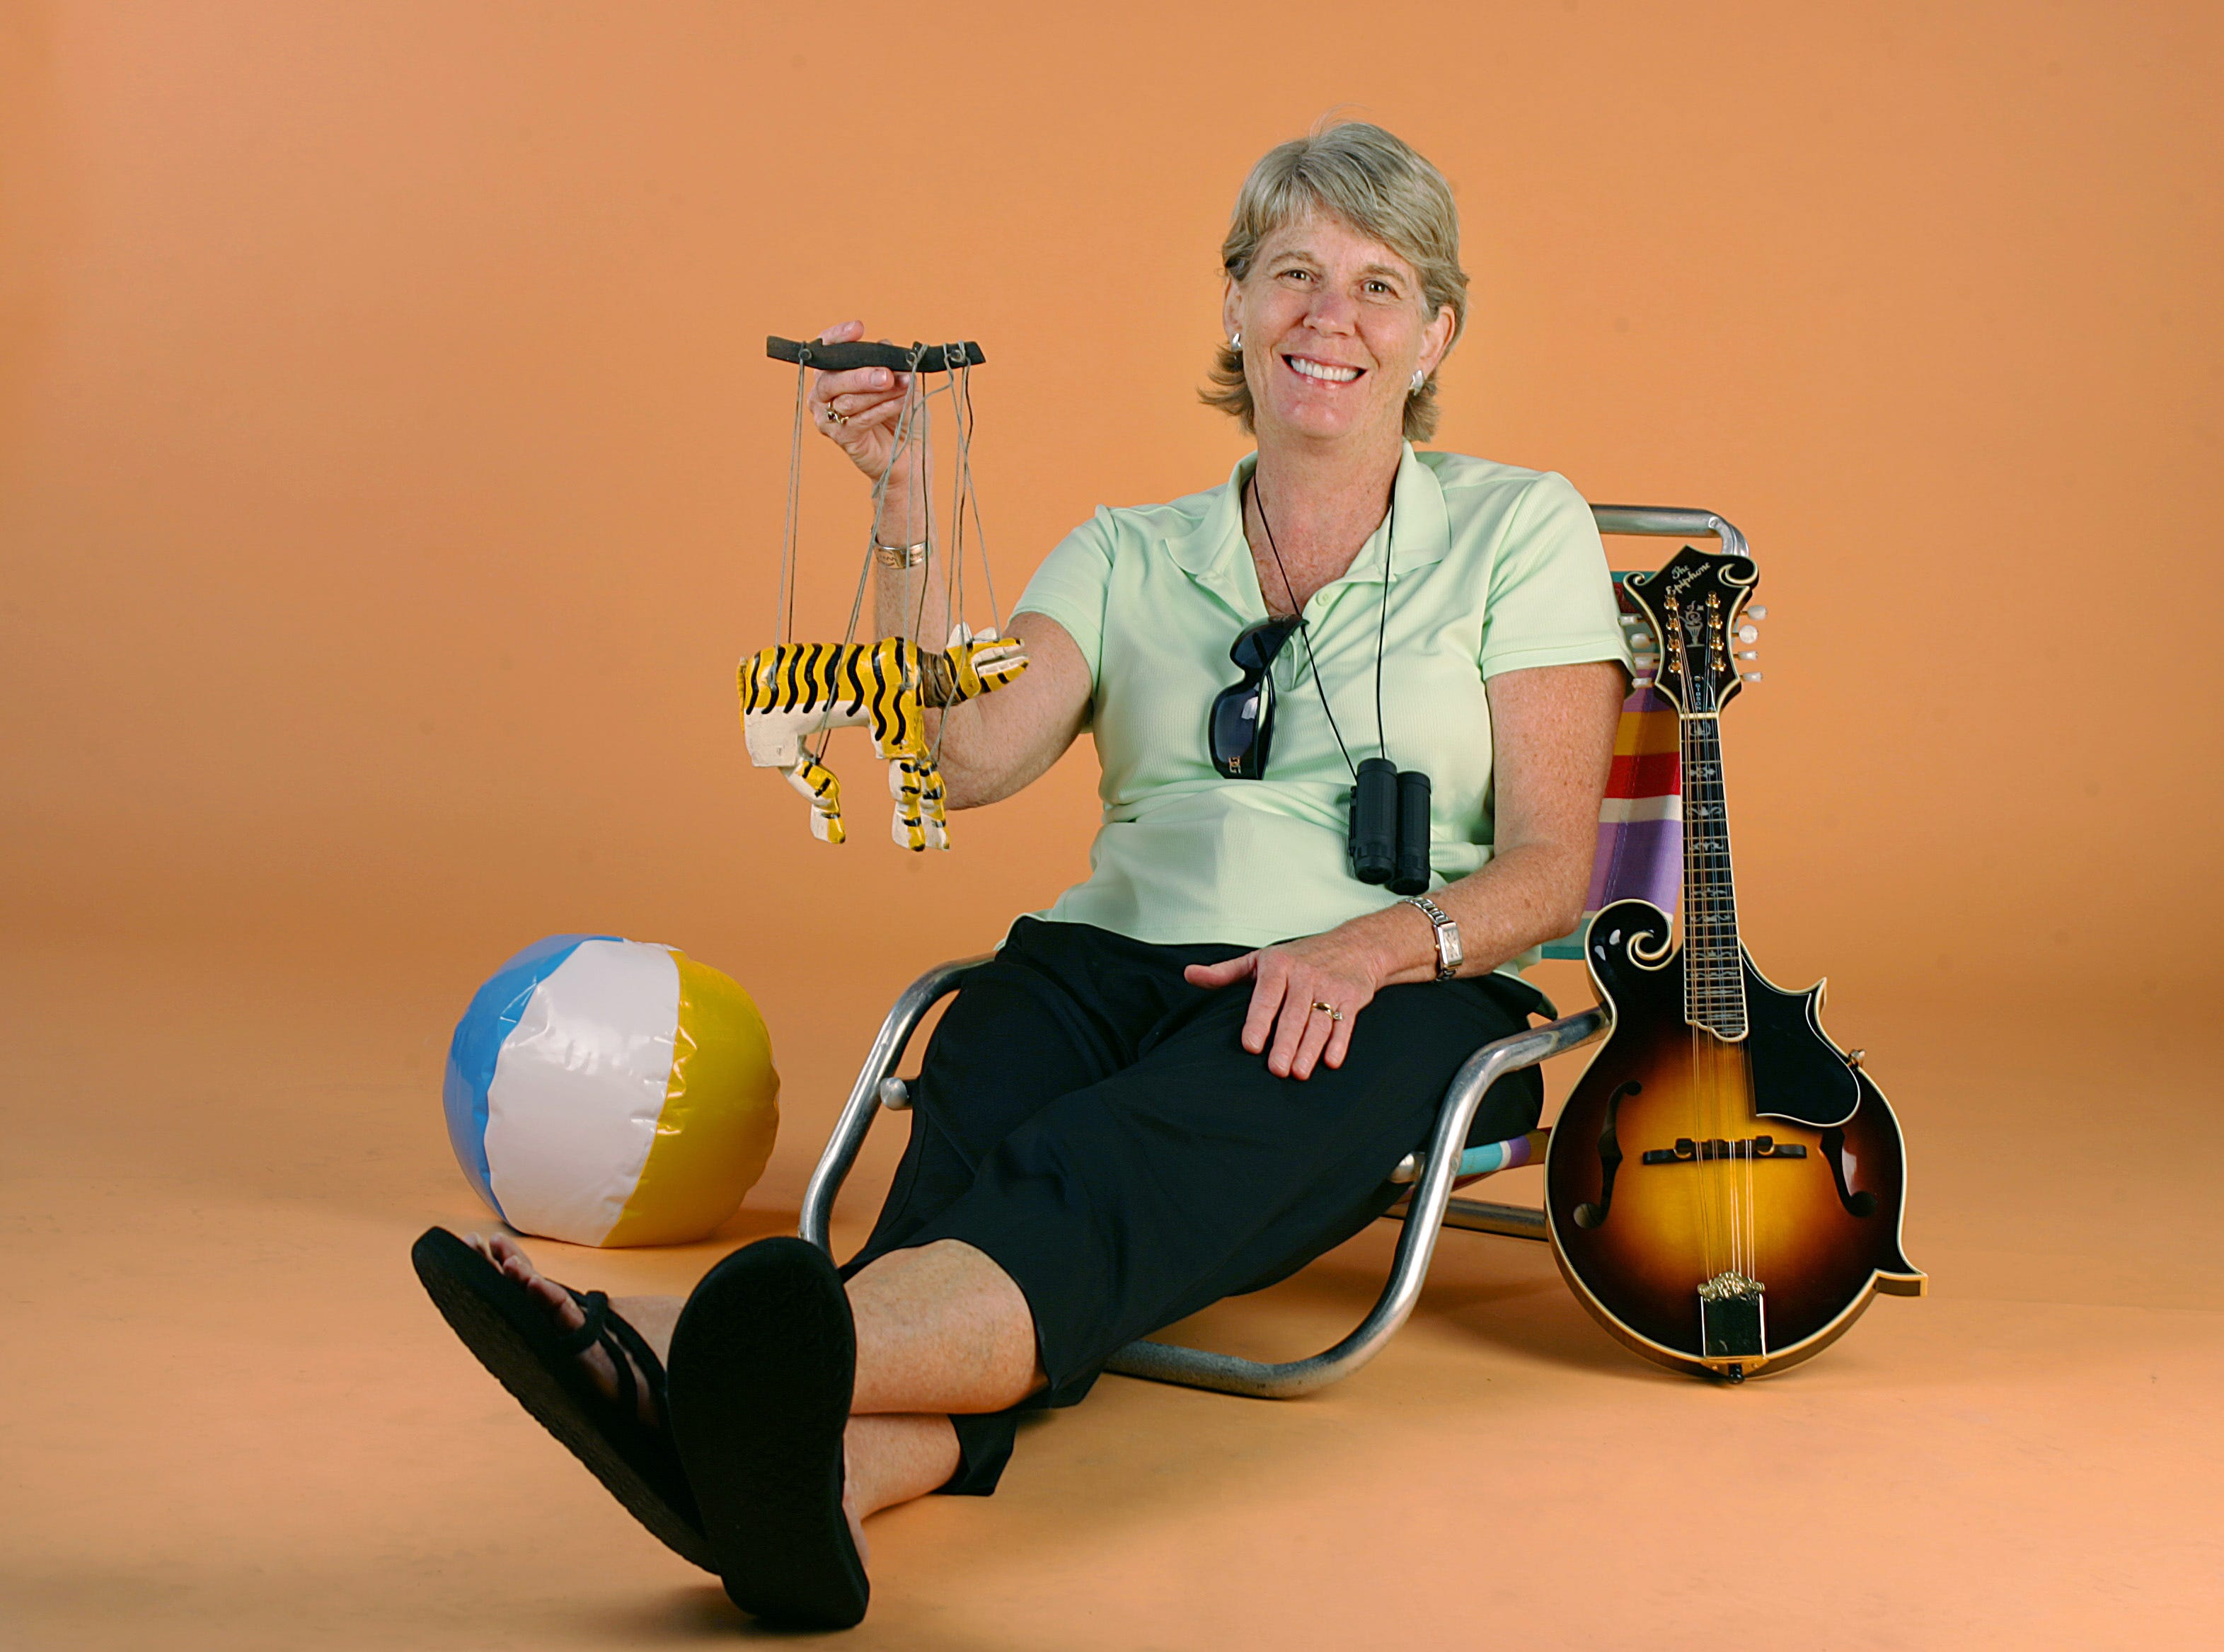 Mary Hance, in the studio May 12, 2009, shows that she is ready for summer fun.